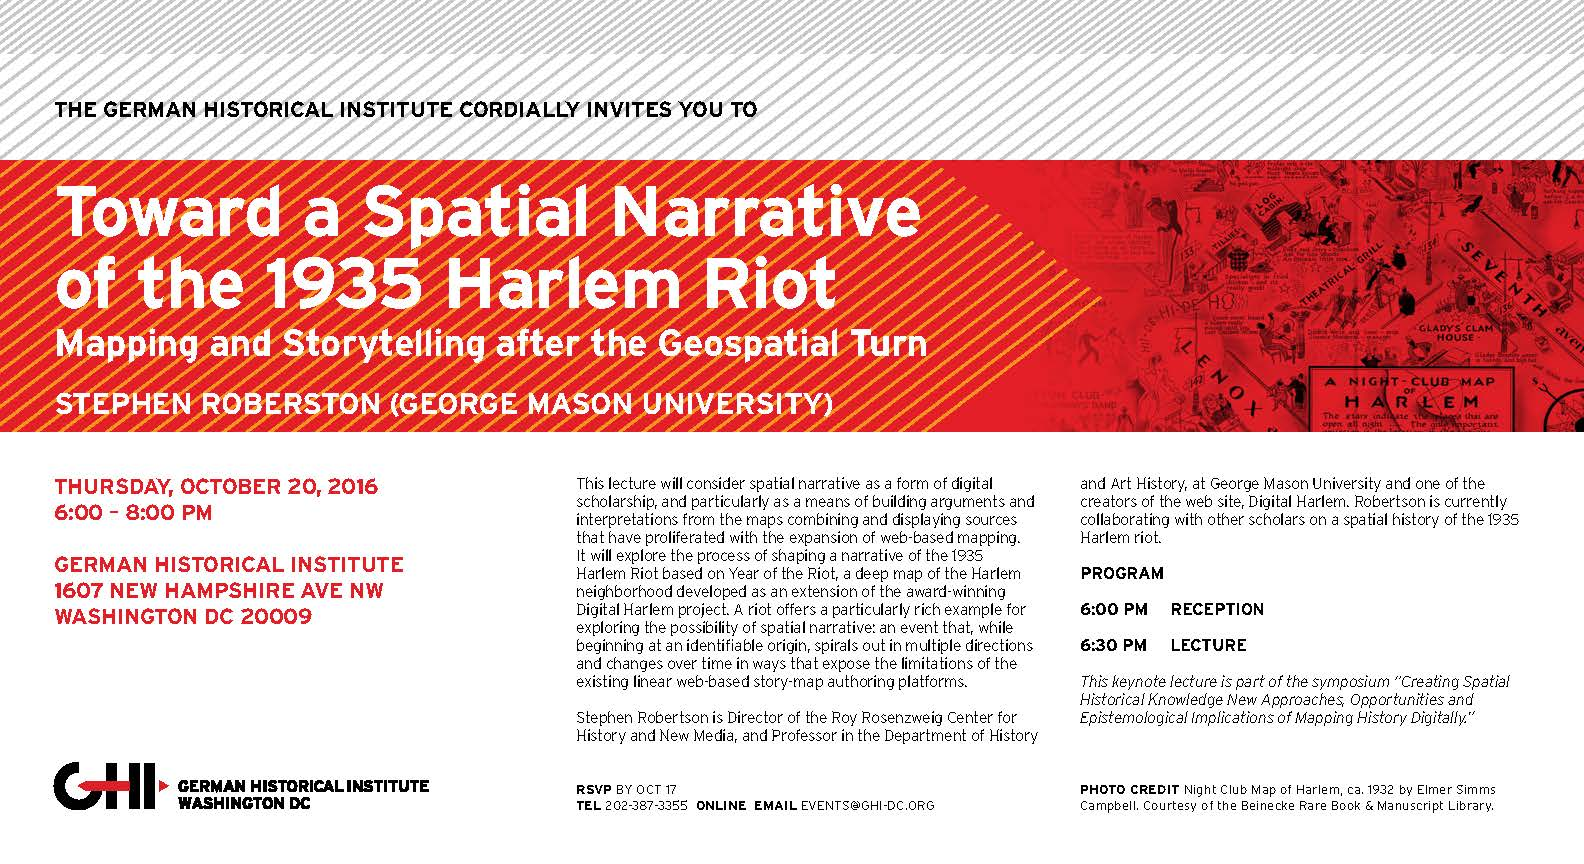 Toward a Spatial Narrative of the 1935 Harlem Riot